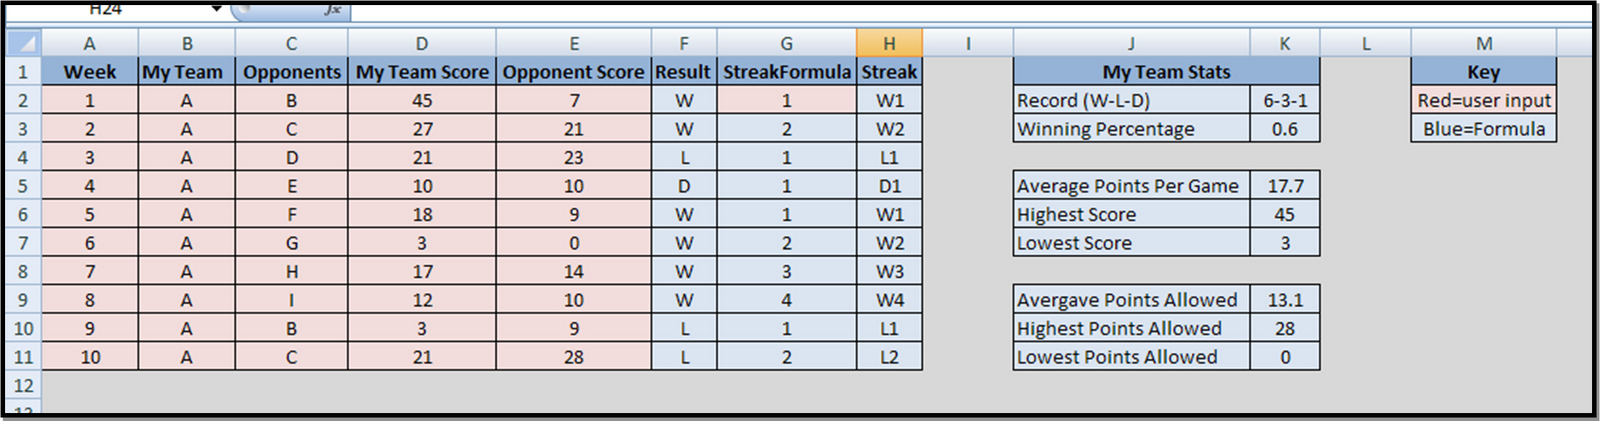 how to make a 4 column spreadsheet in excel